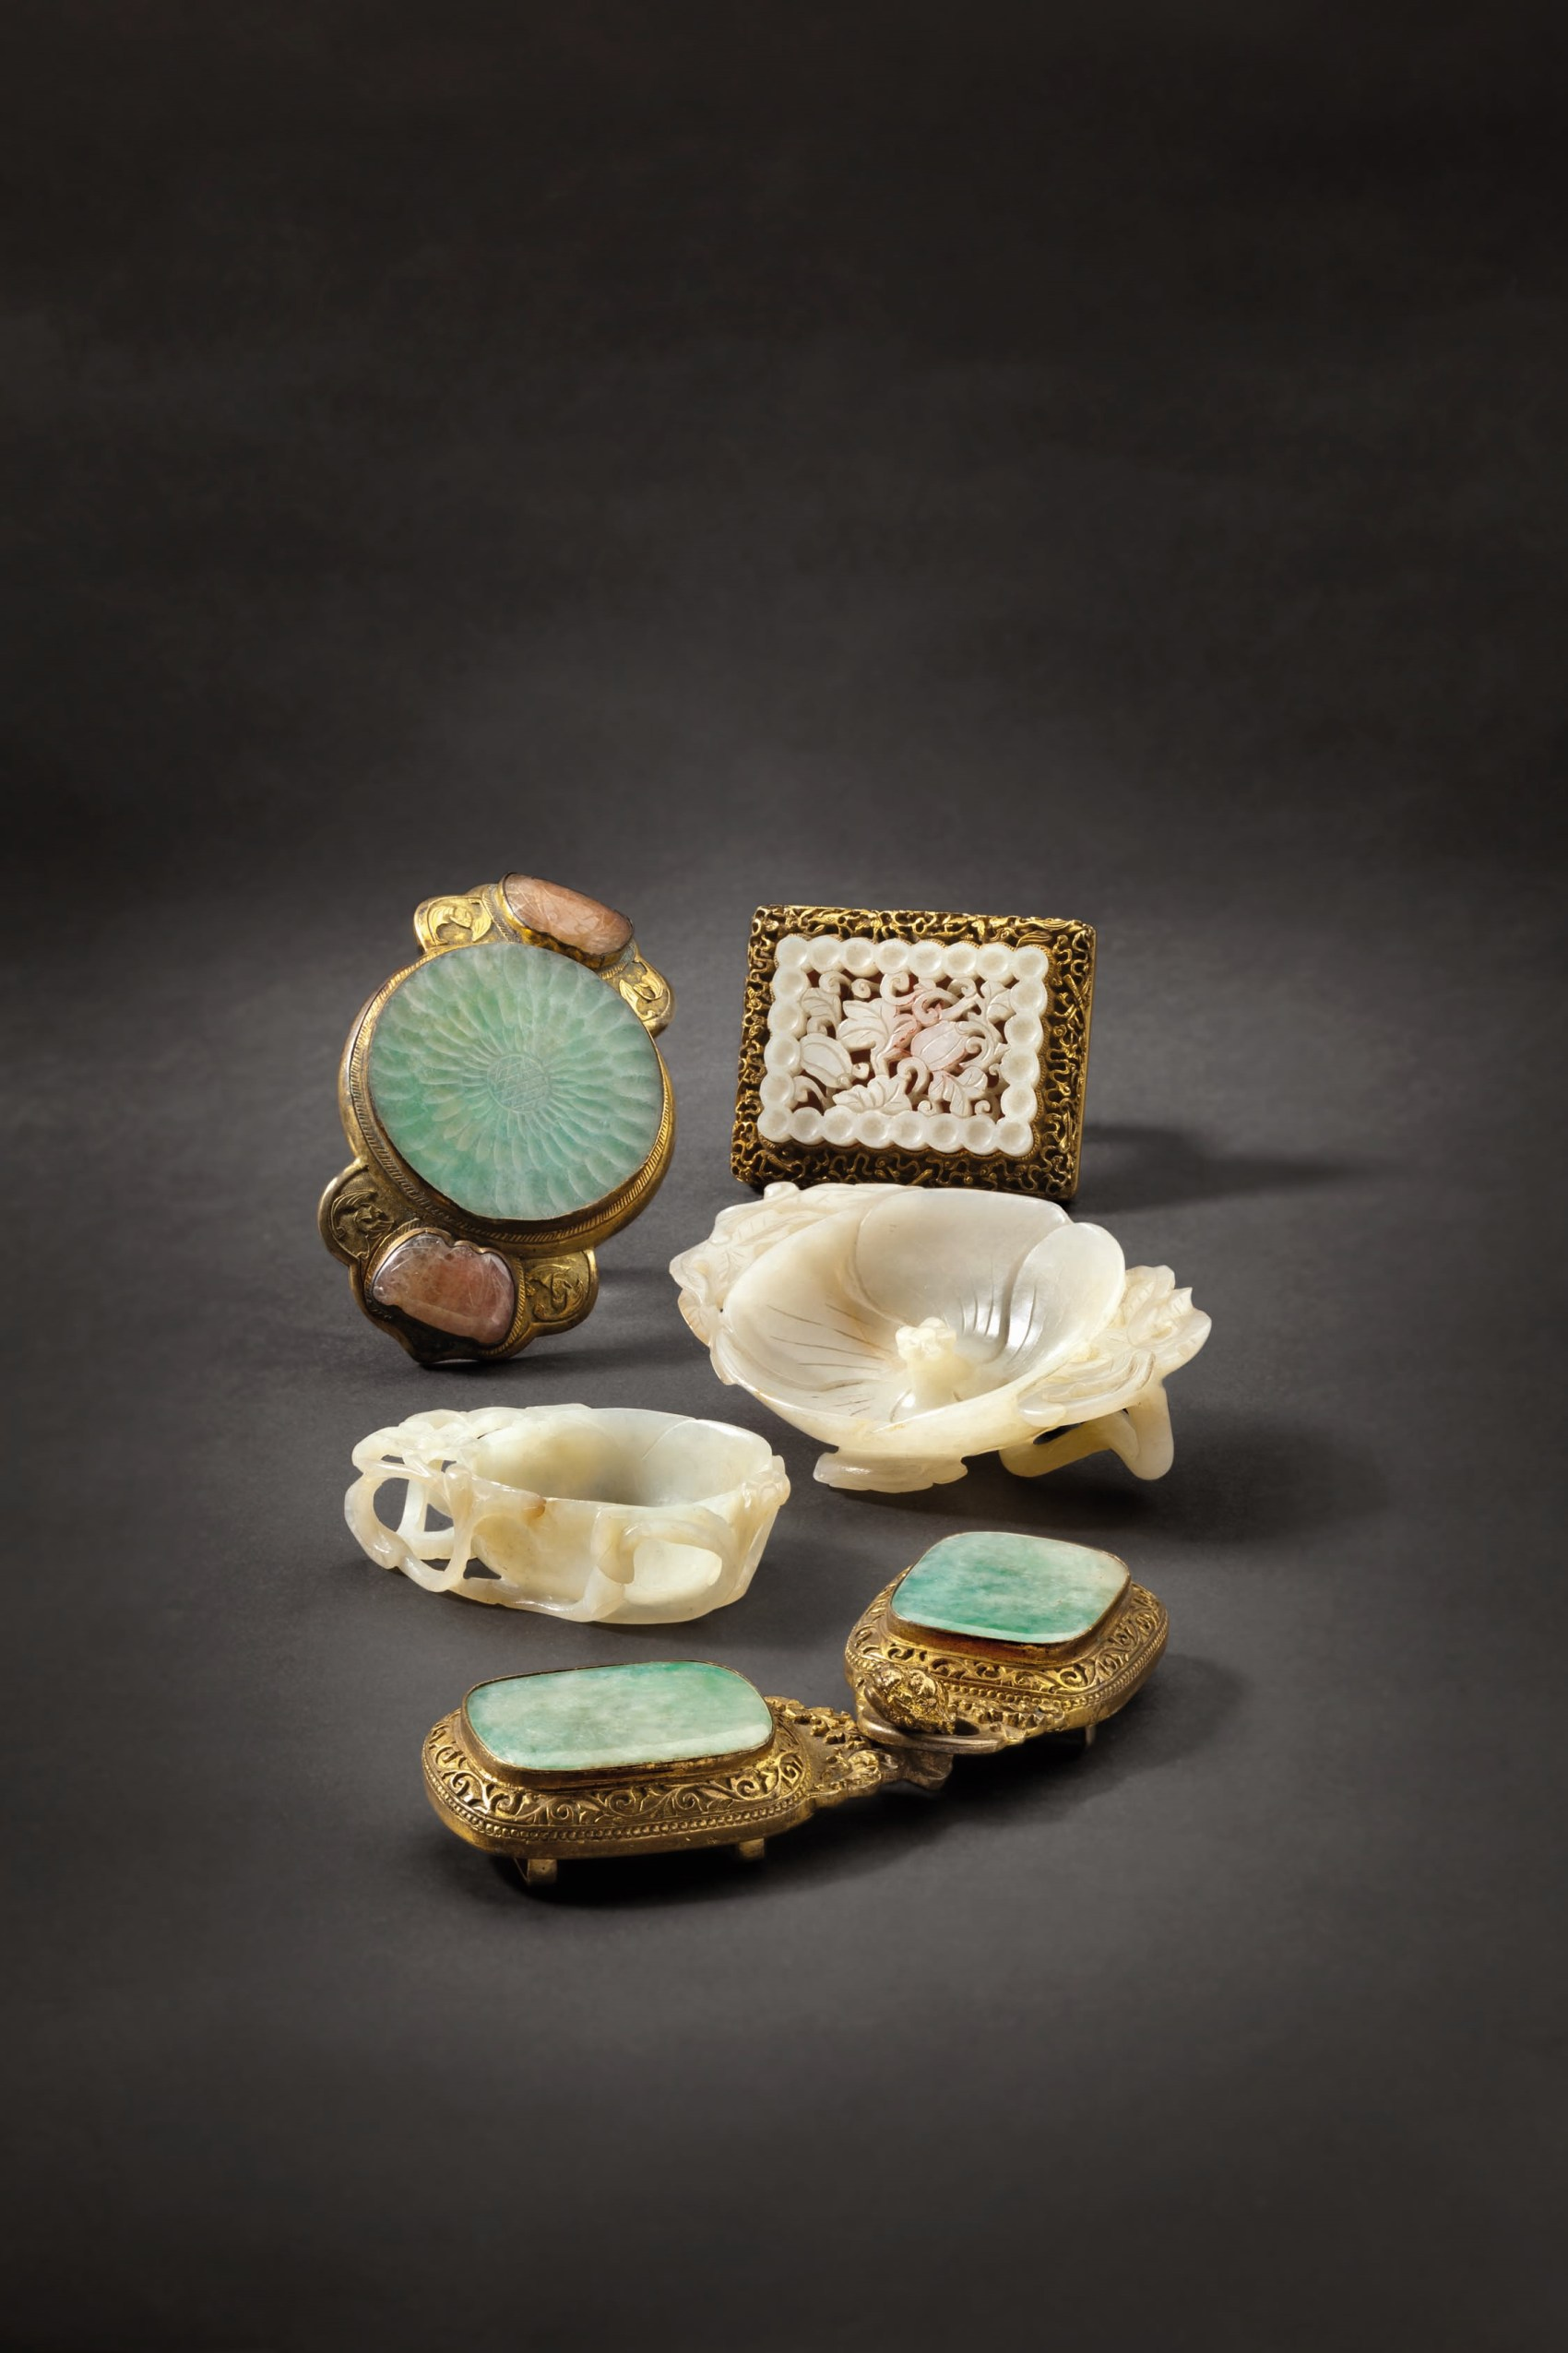 HH_69_LotNo_2768_Chinese_belt_buckle_1400_Jade_Objects